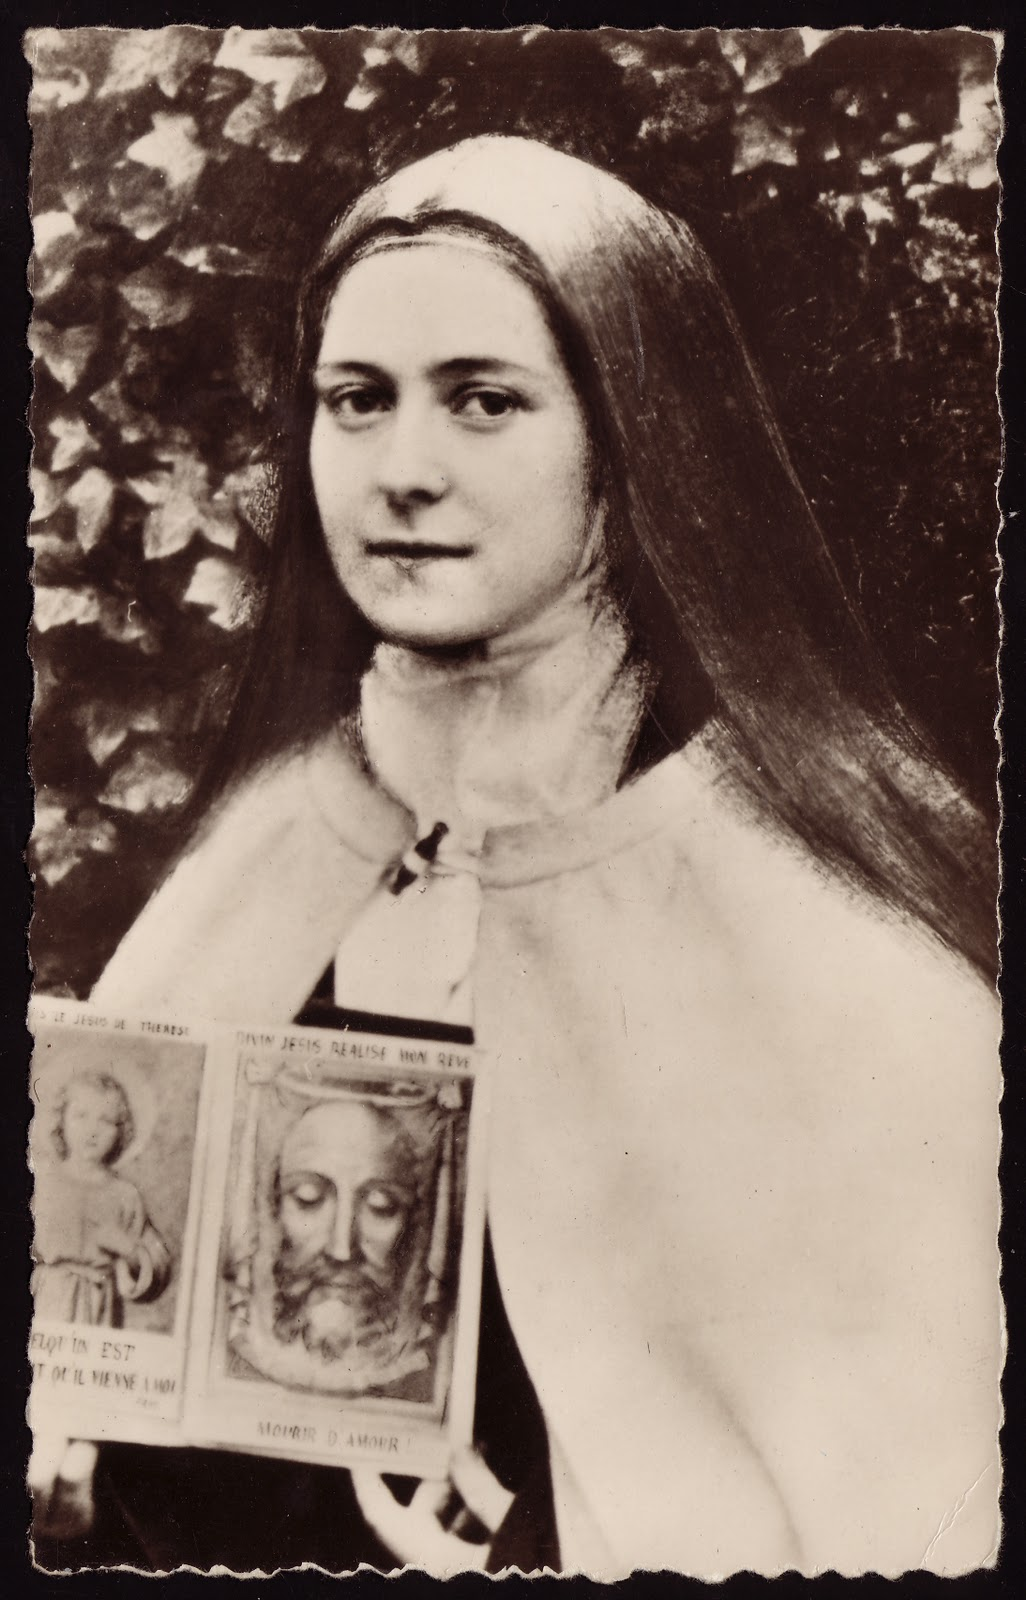 St. Therese- Holy Face and Child Jesus